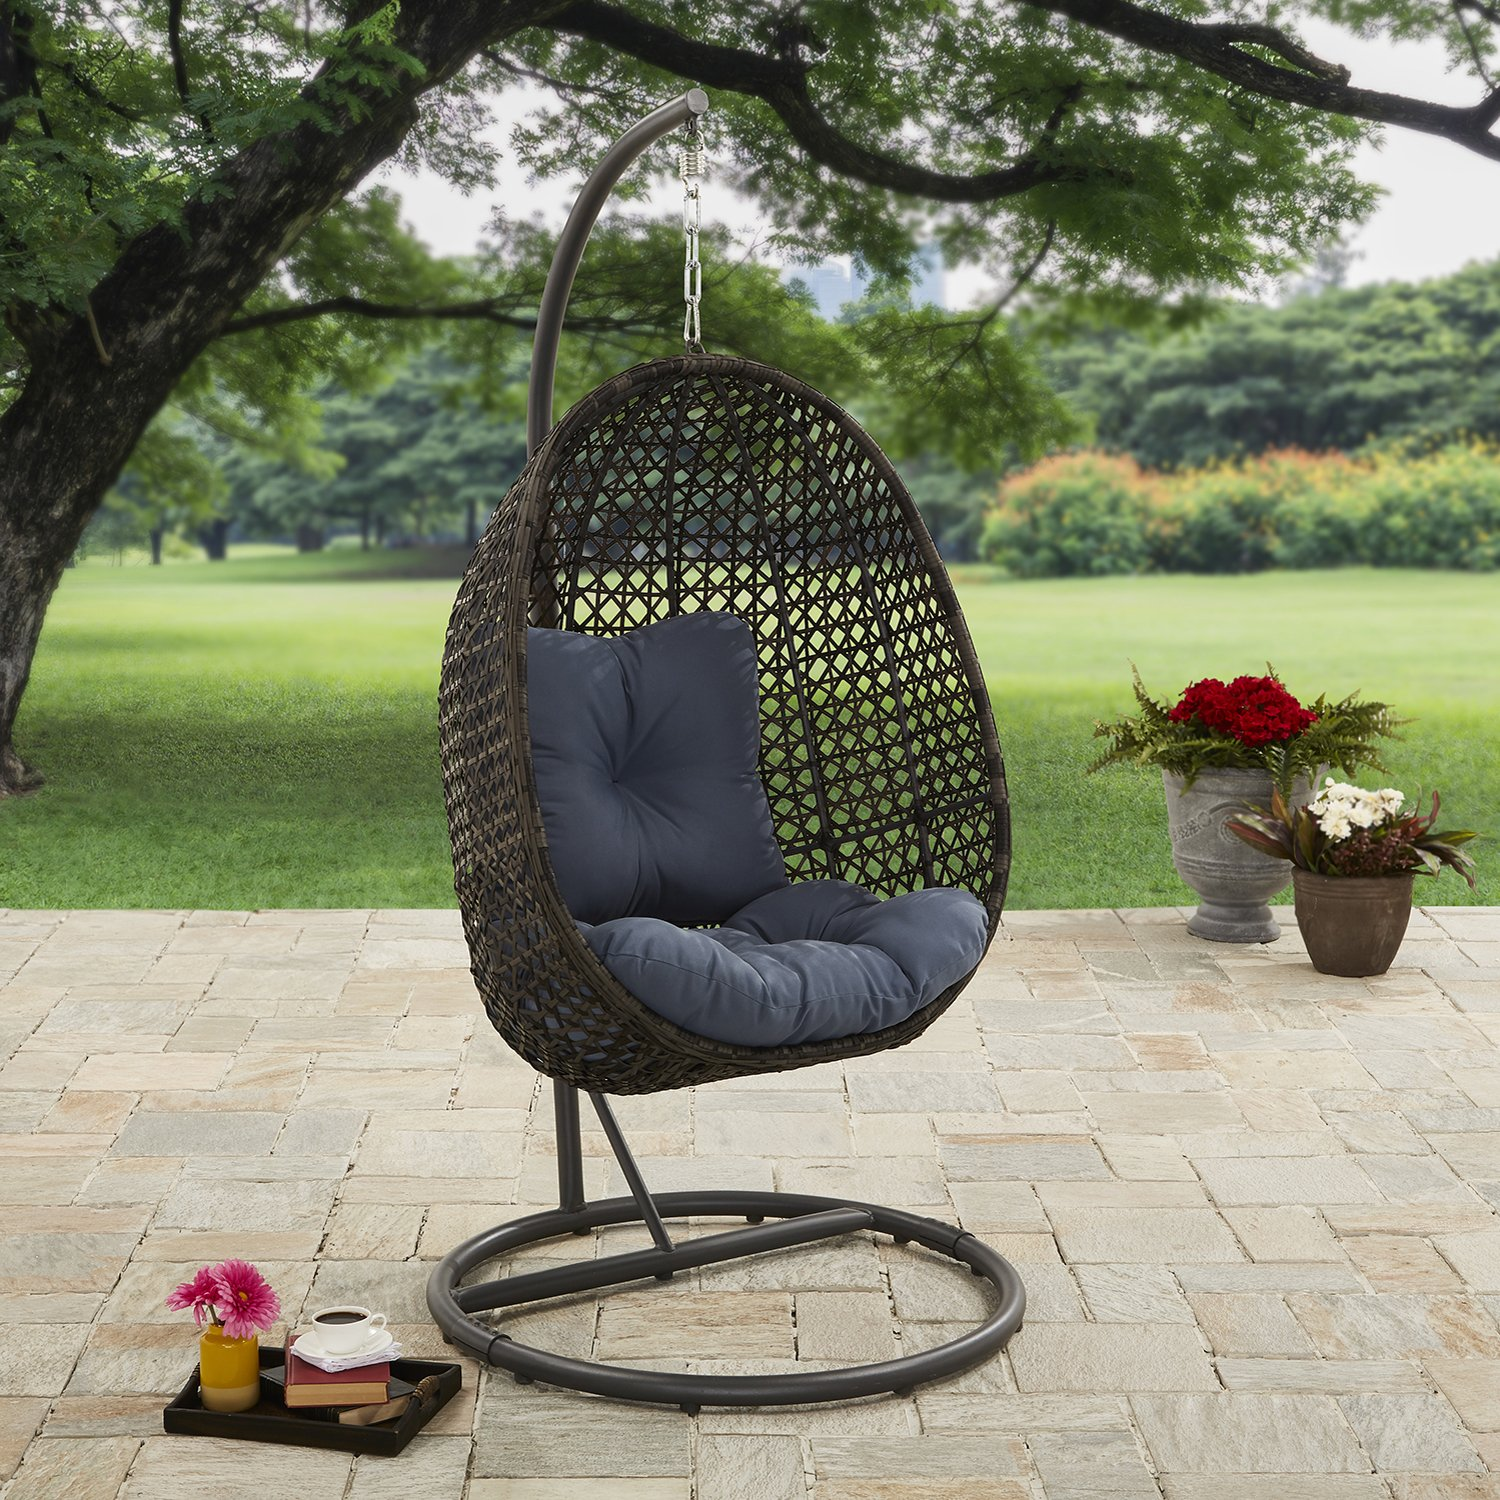 Better Homes And Gardens Lantis Outdoor Wicker Hanging Chair With Stand Industrial Scientific